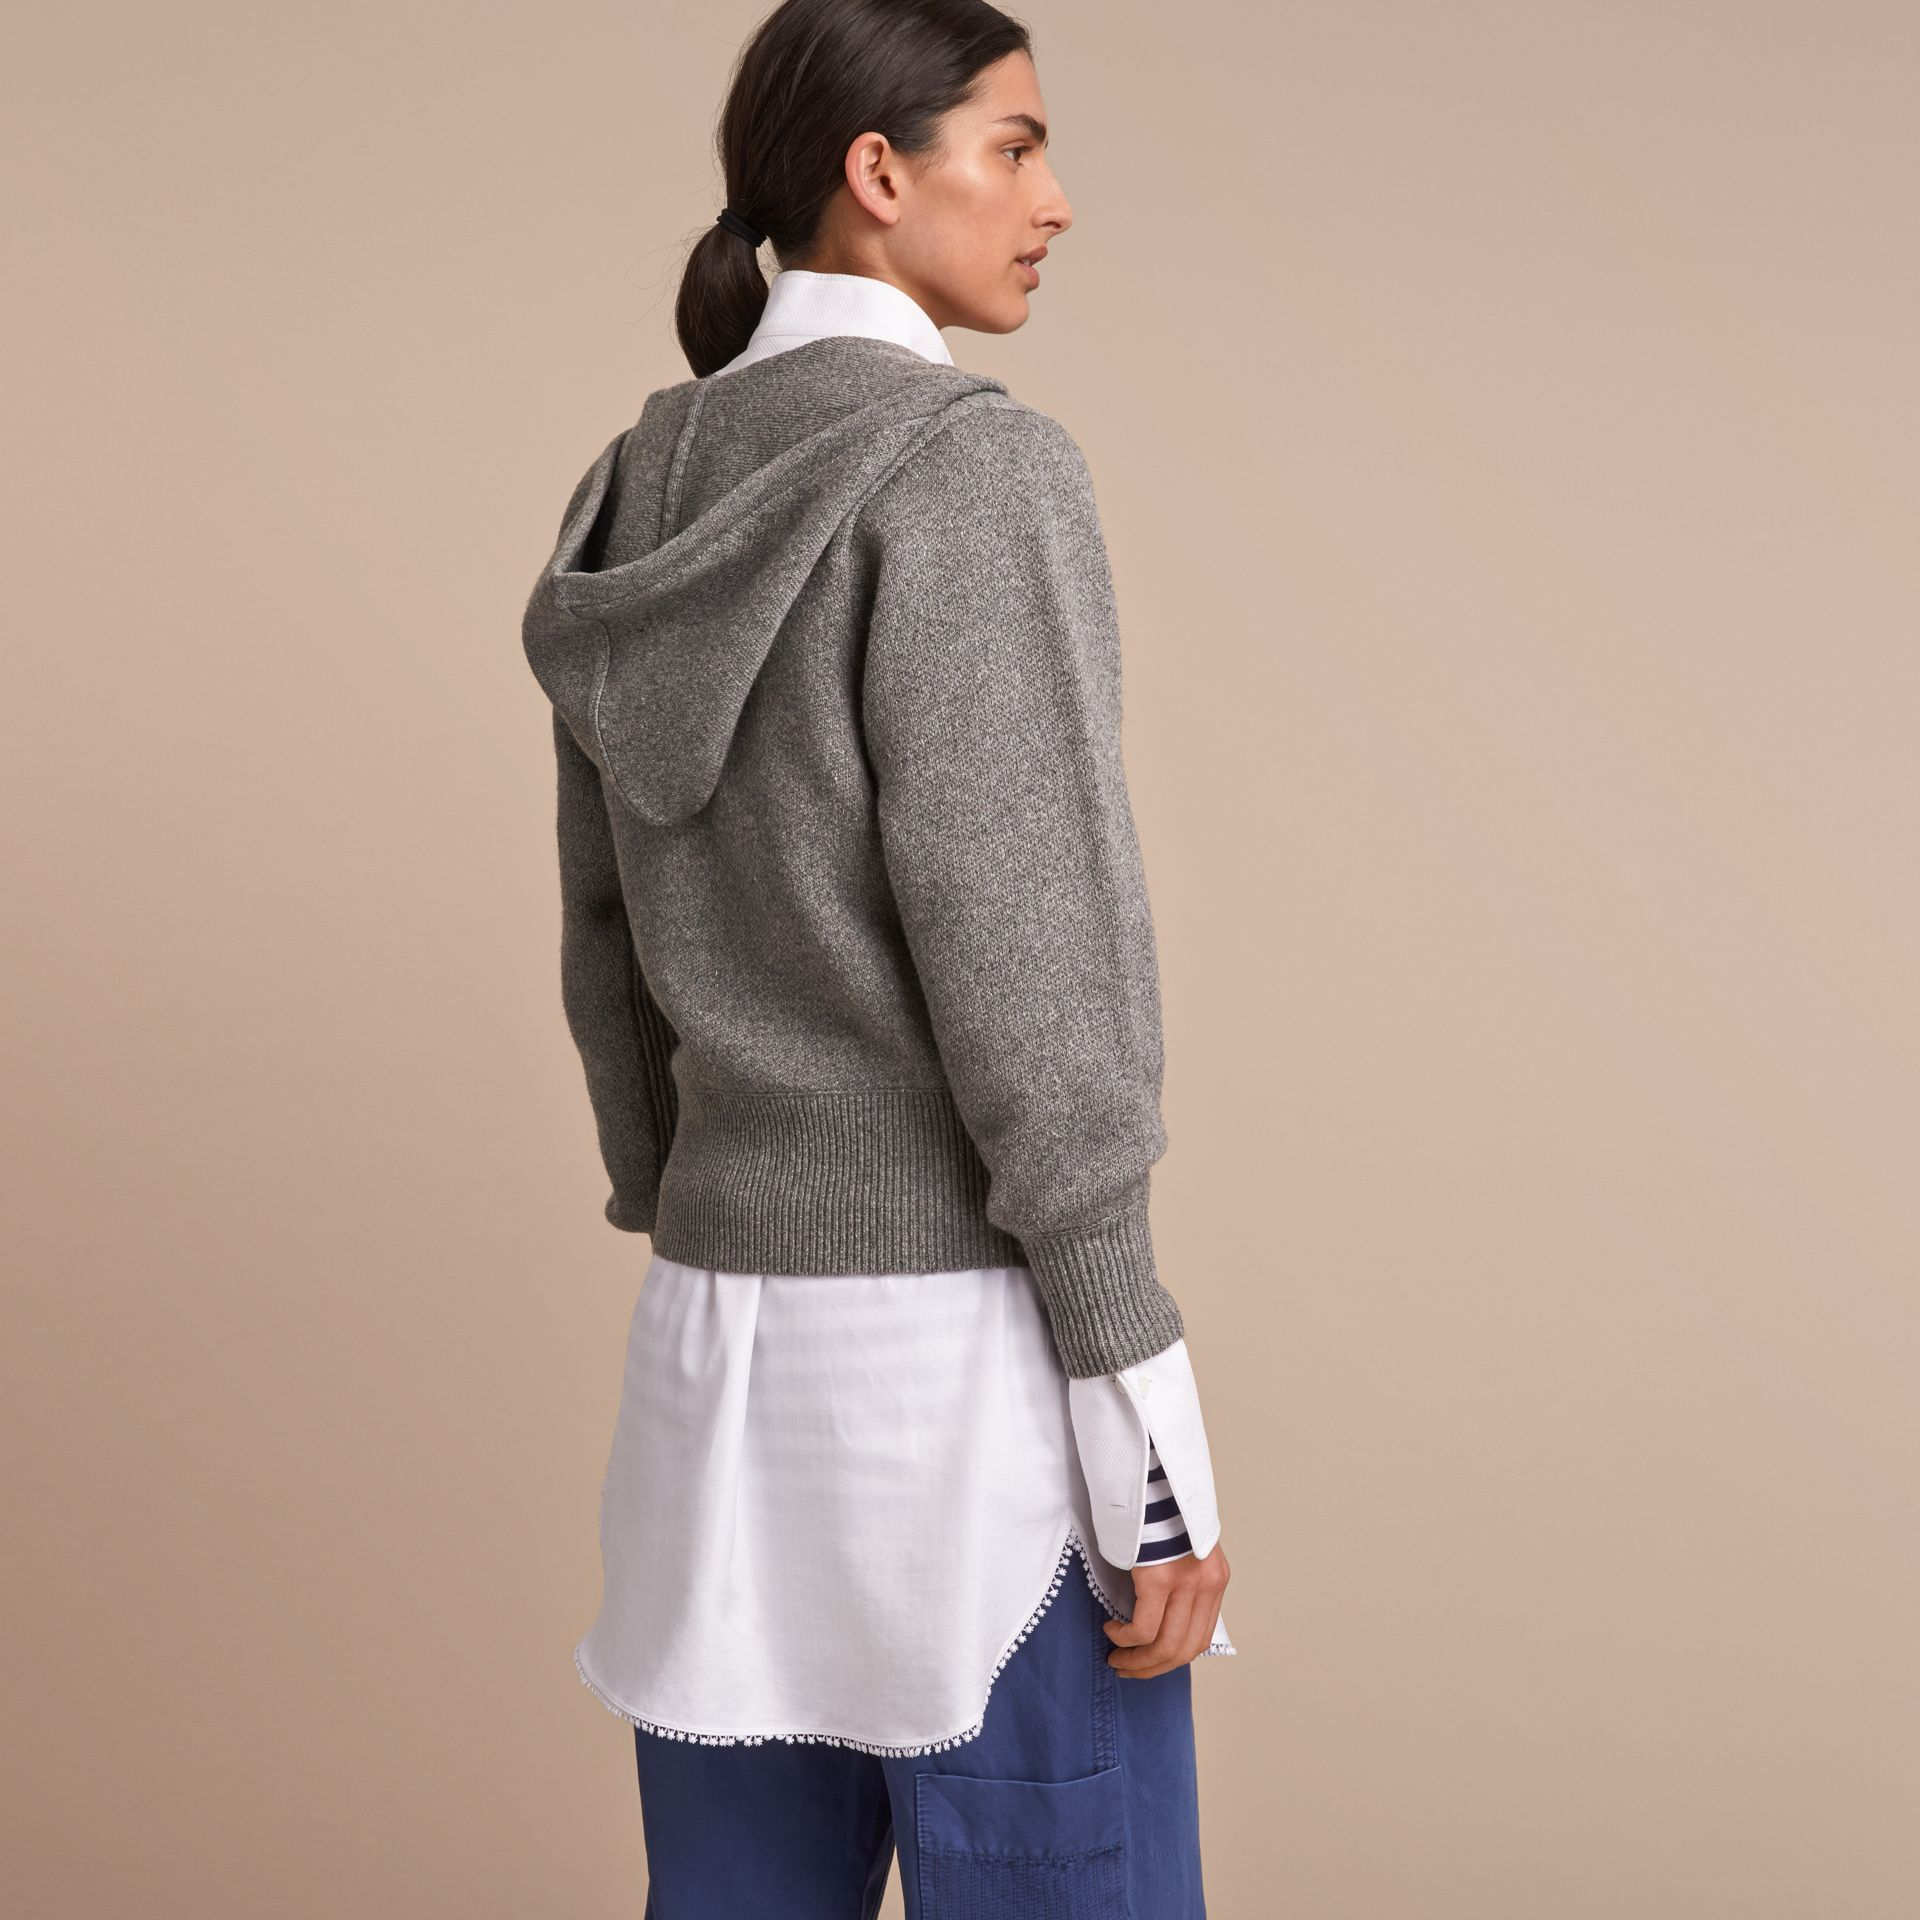 Hooded Pallas Heads Motif Wool Cashmere Top in Mid Grey Melange - Women | Burberry - gallery image 2